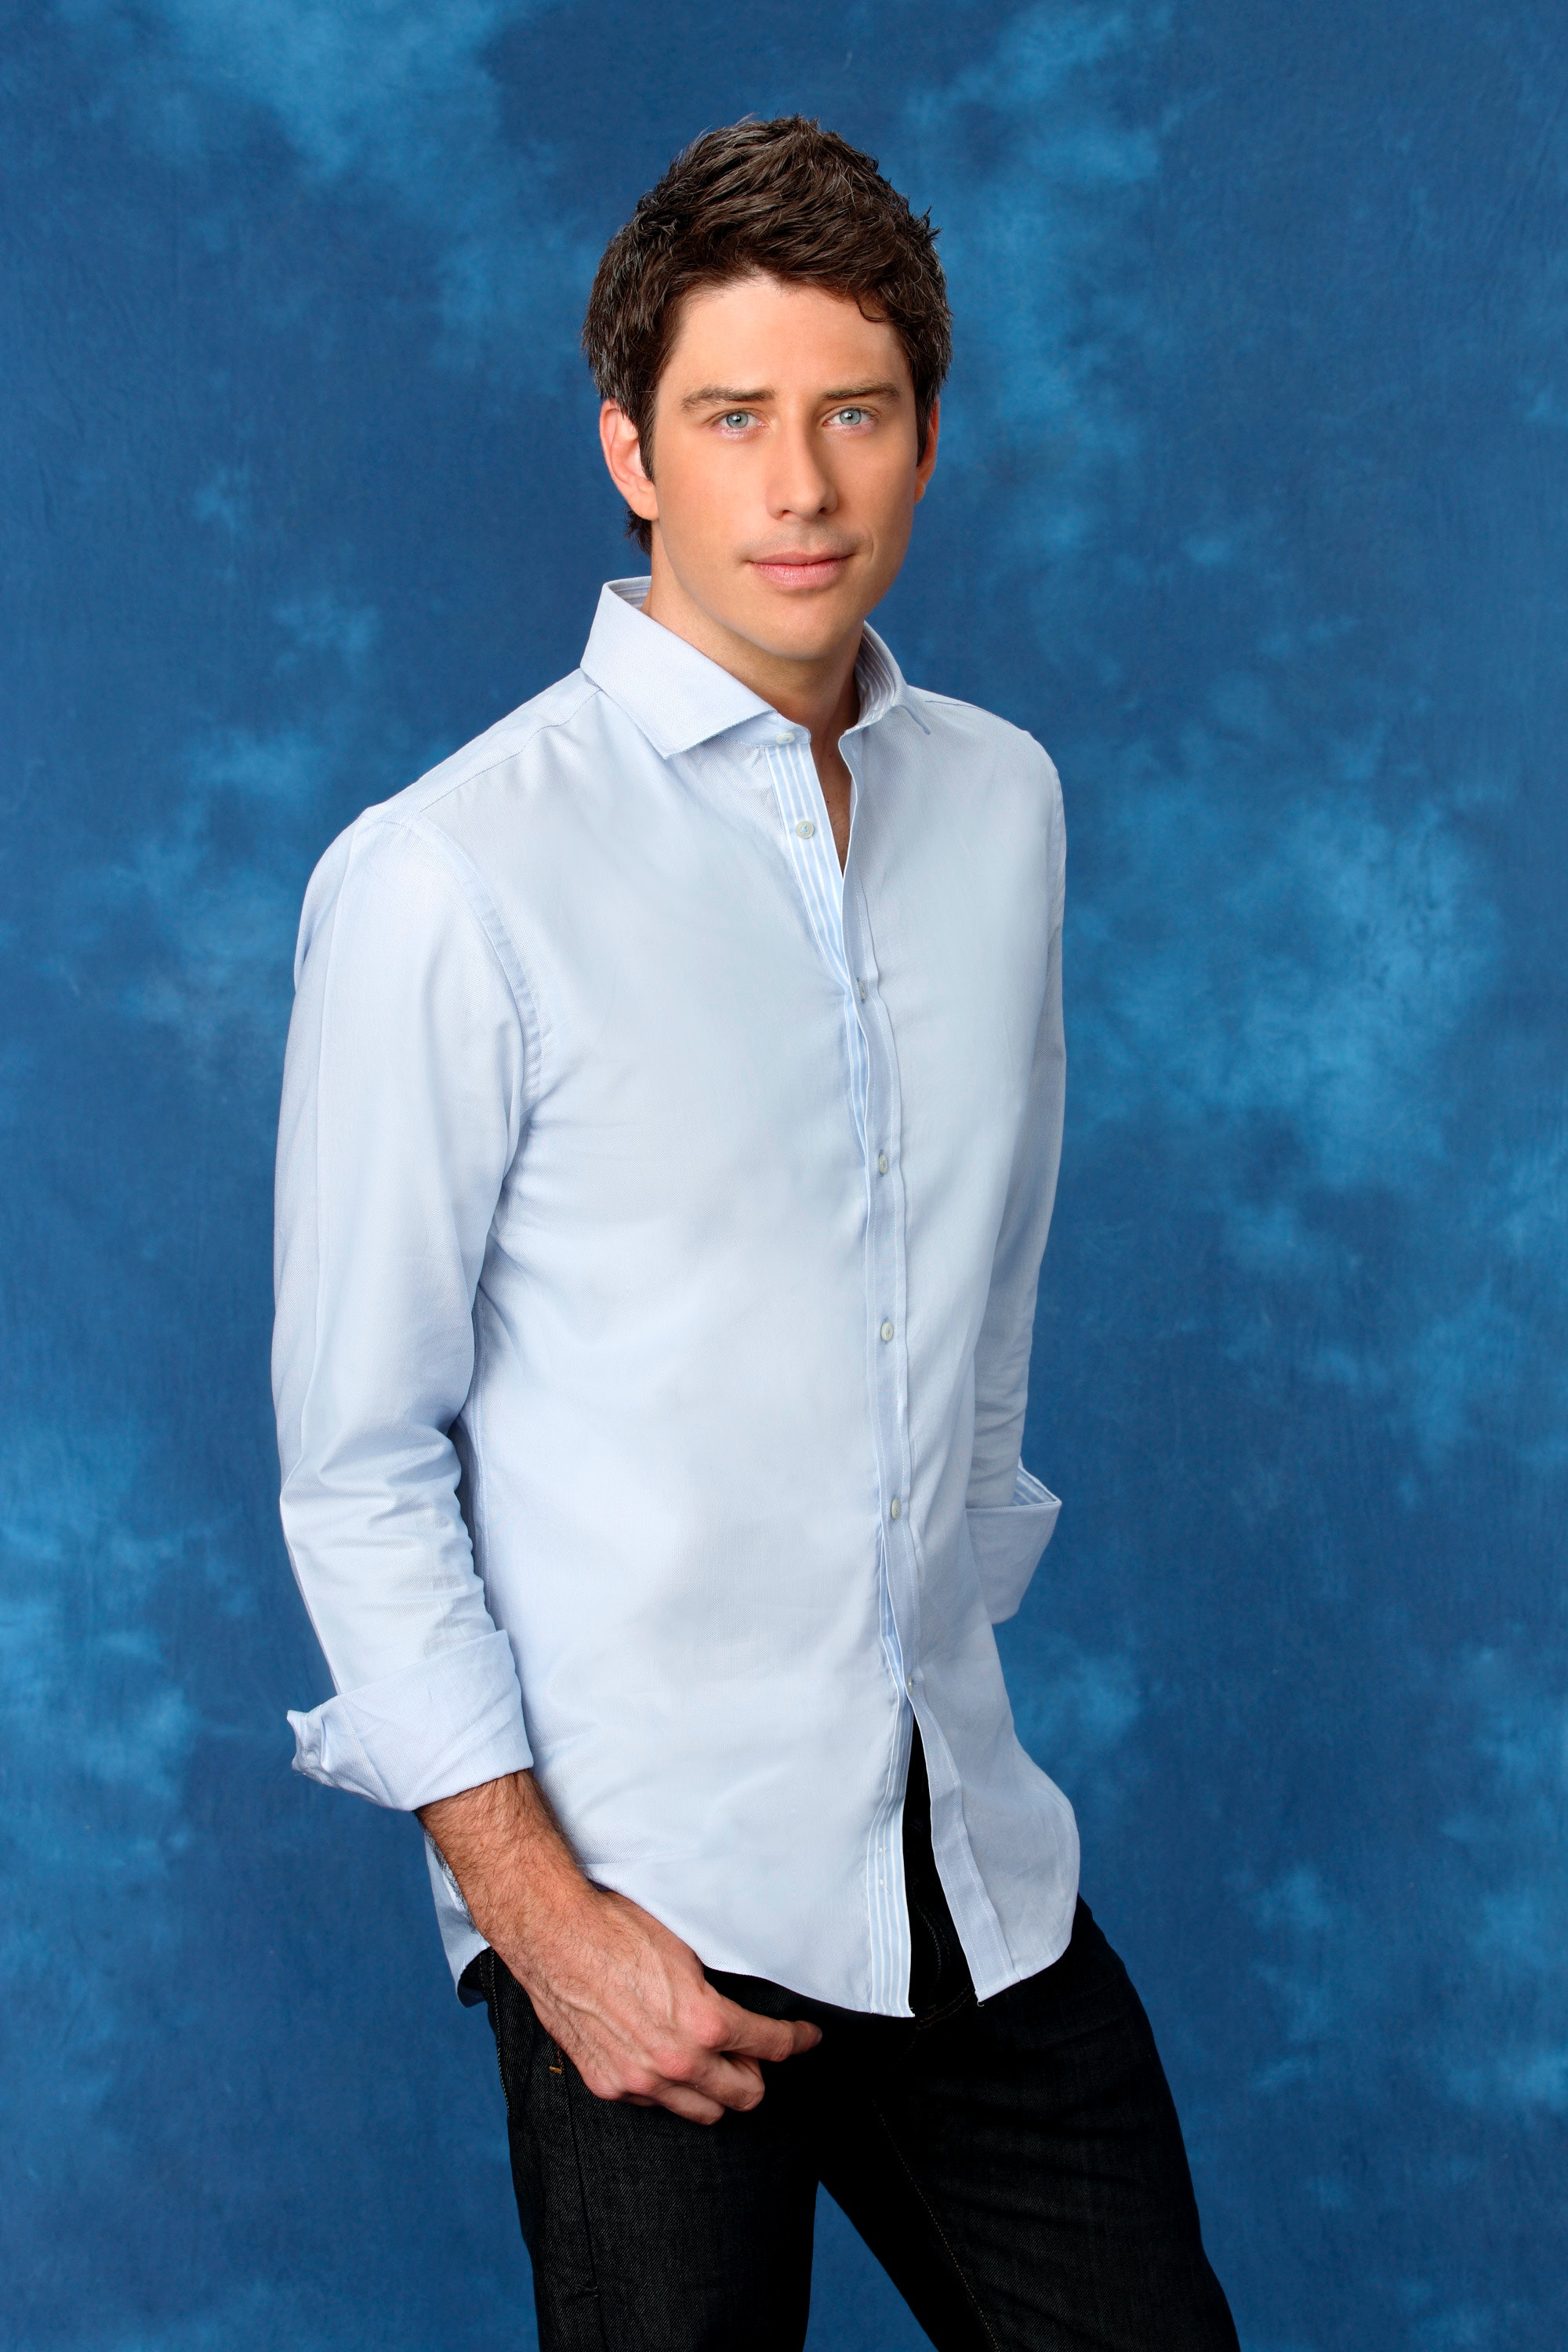 Who is arie from the bachelorette hookup now